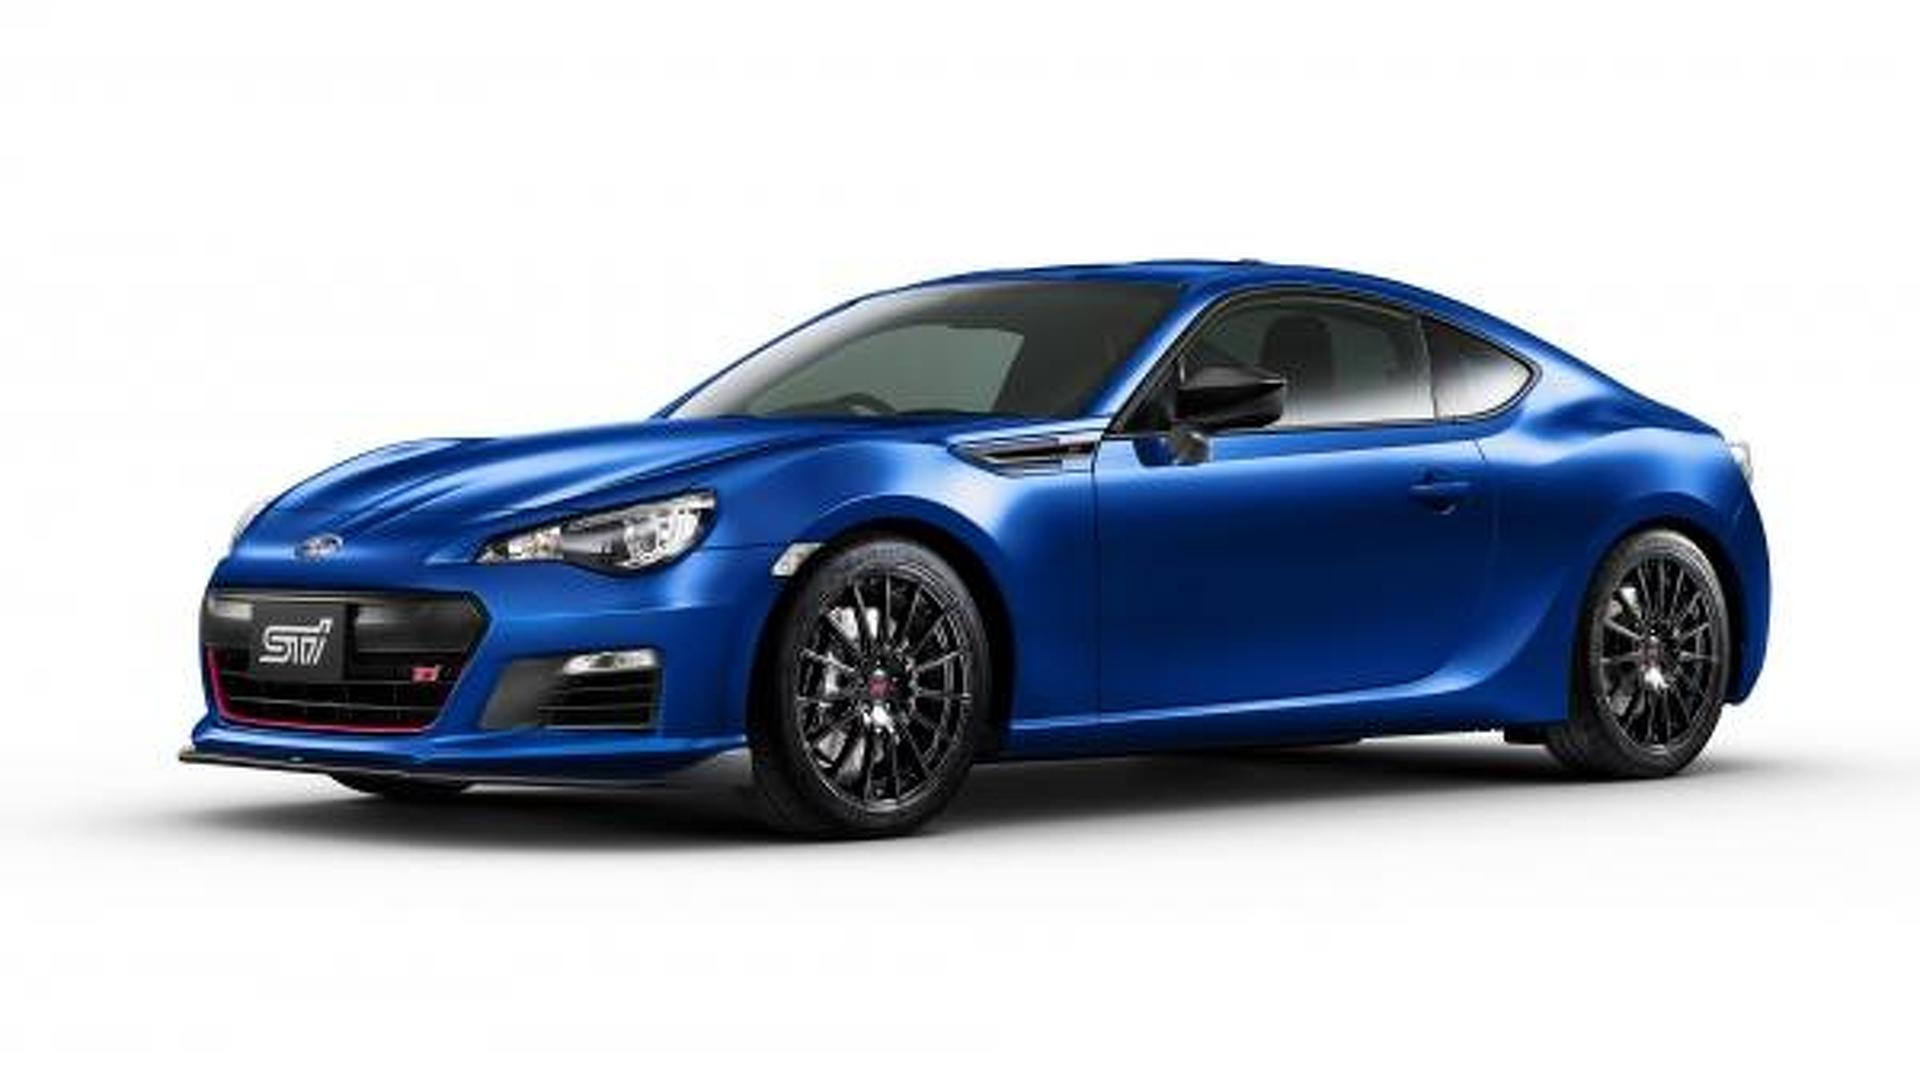 2015 Subaru BRZ tS STI launched in Japan with several